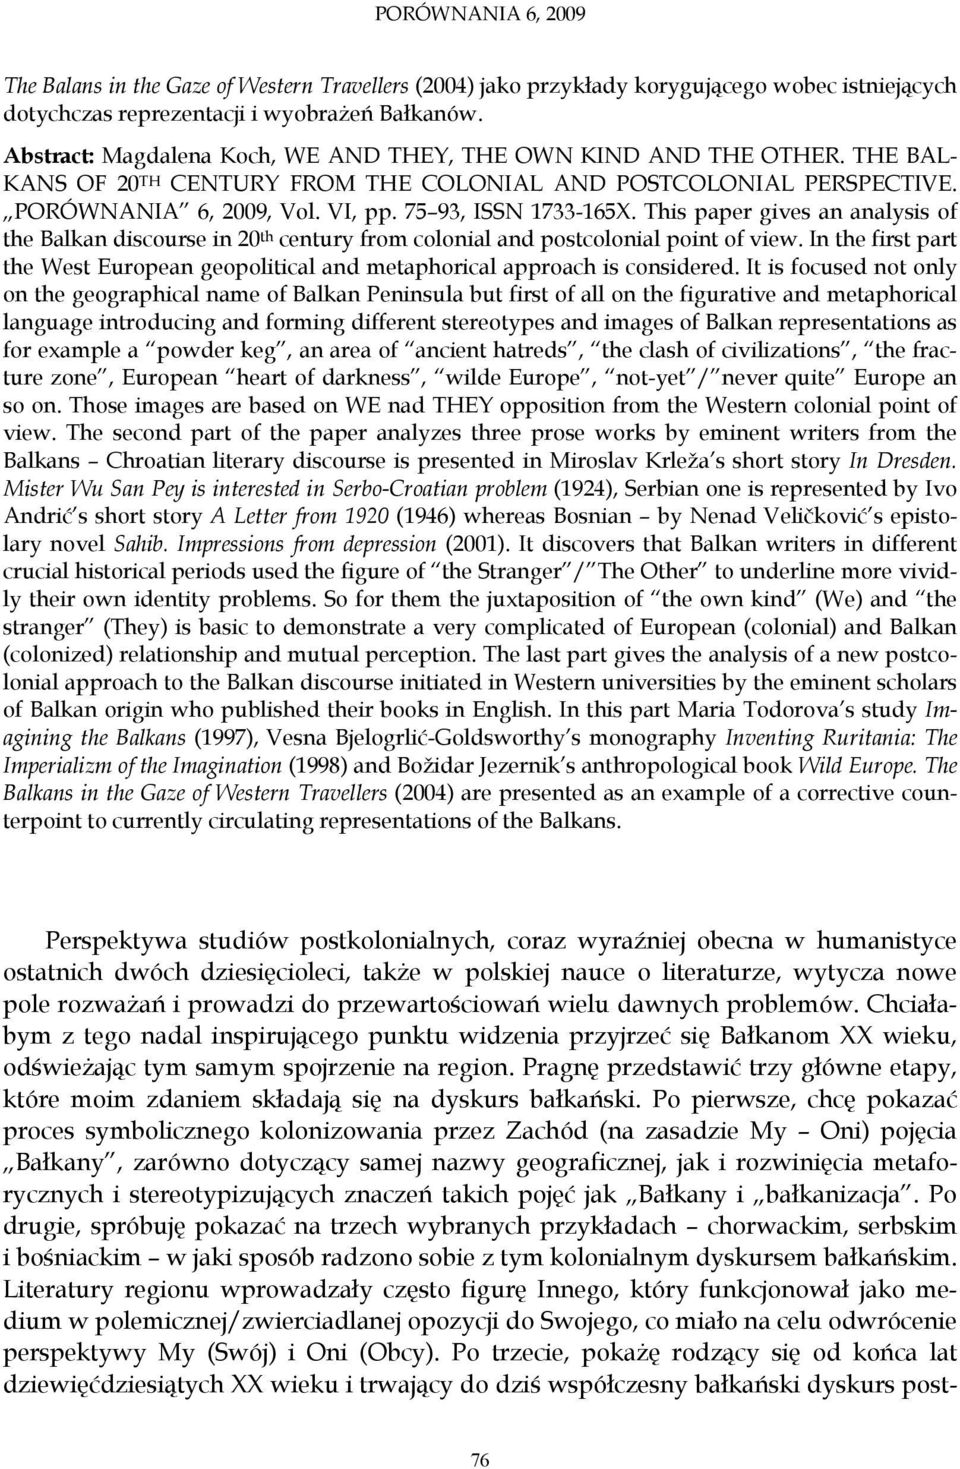 75 93, ISSN 1733-165X. This paper gives an analysis of the Balkan discourse in 20 th century from colonial and postcolonial point of view.